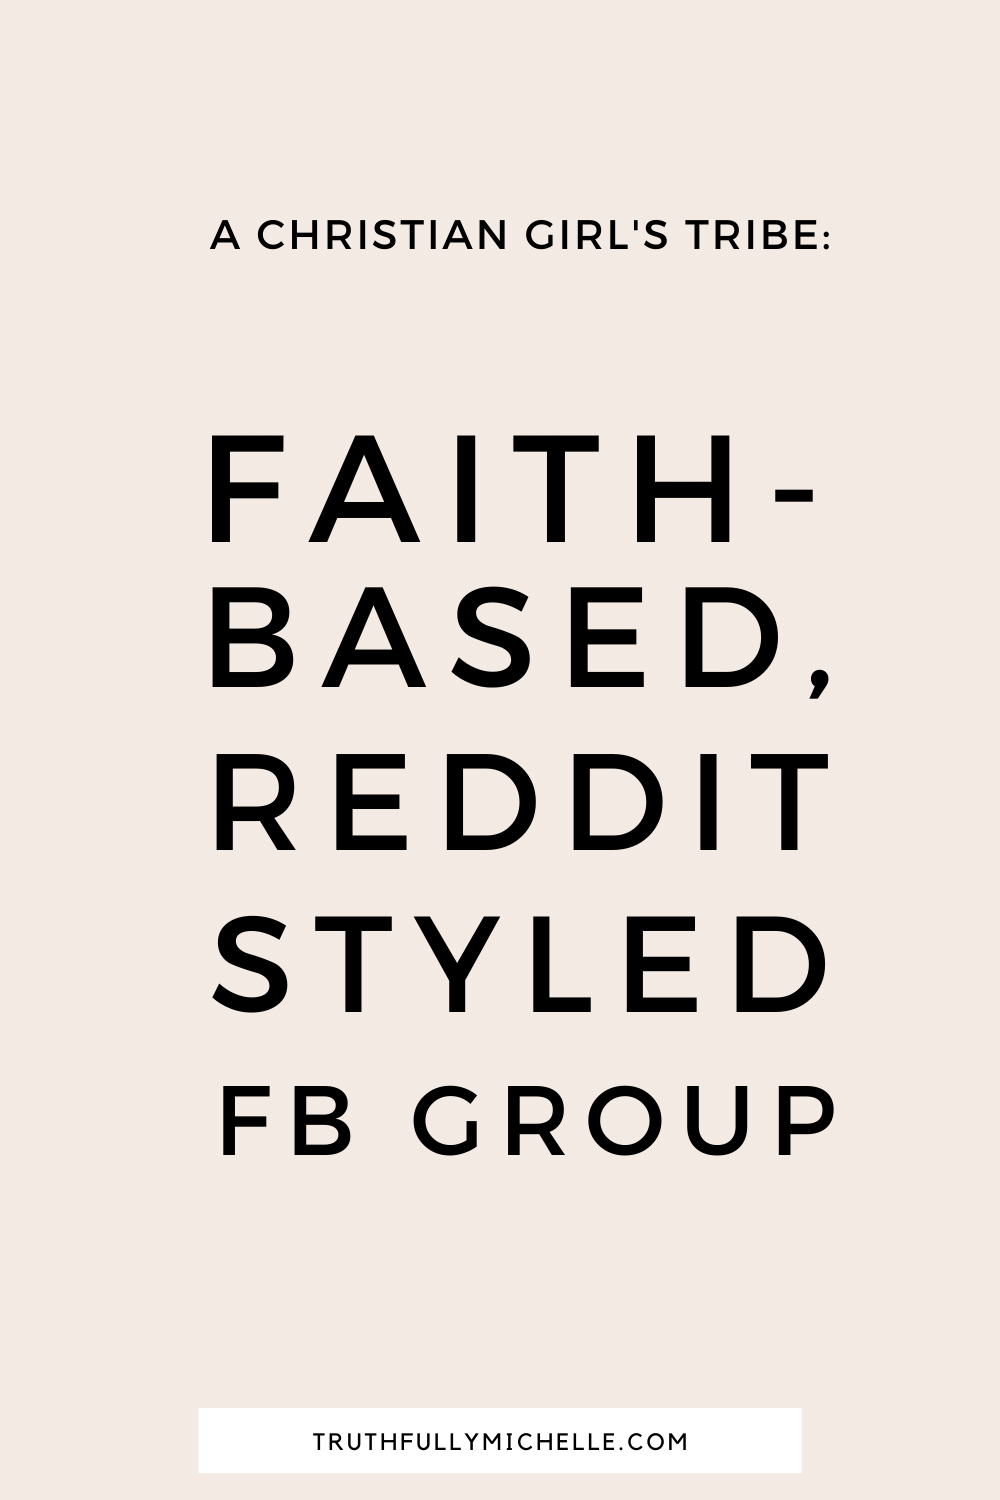 Christian facebook groups, Best Christian facebook groups, Christian groups to join on Facebook, Best Christian groups on Facebook, Christian girl facebook, Facebook group for women, Facebook group for young women, Facebook group for Christians, Facebook group for girls